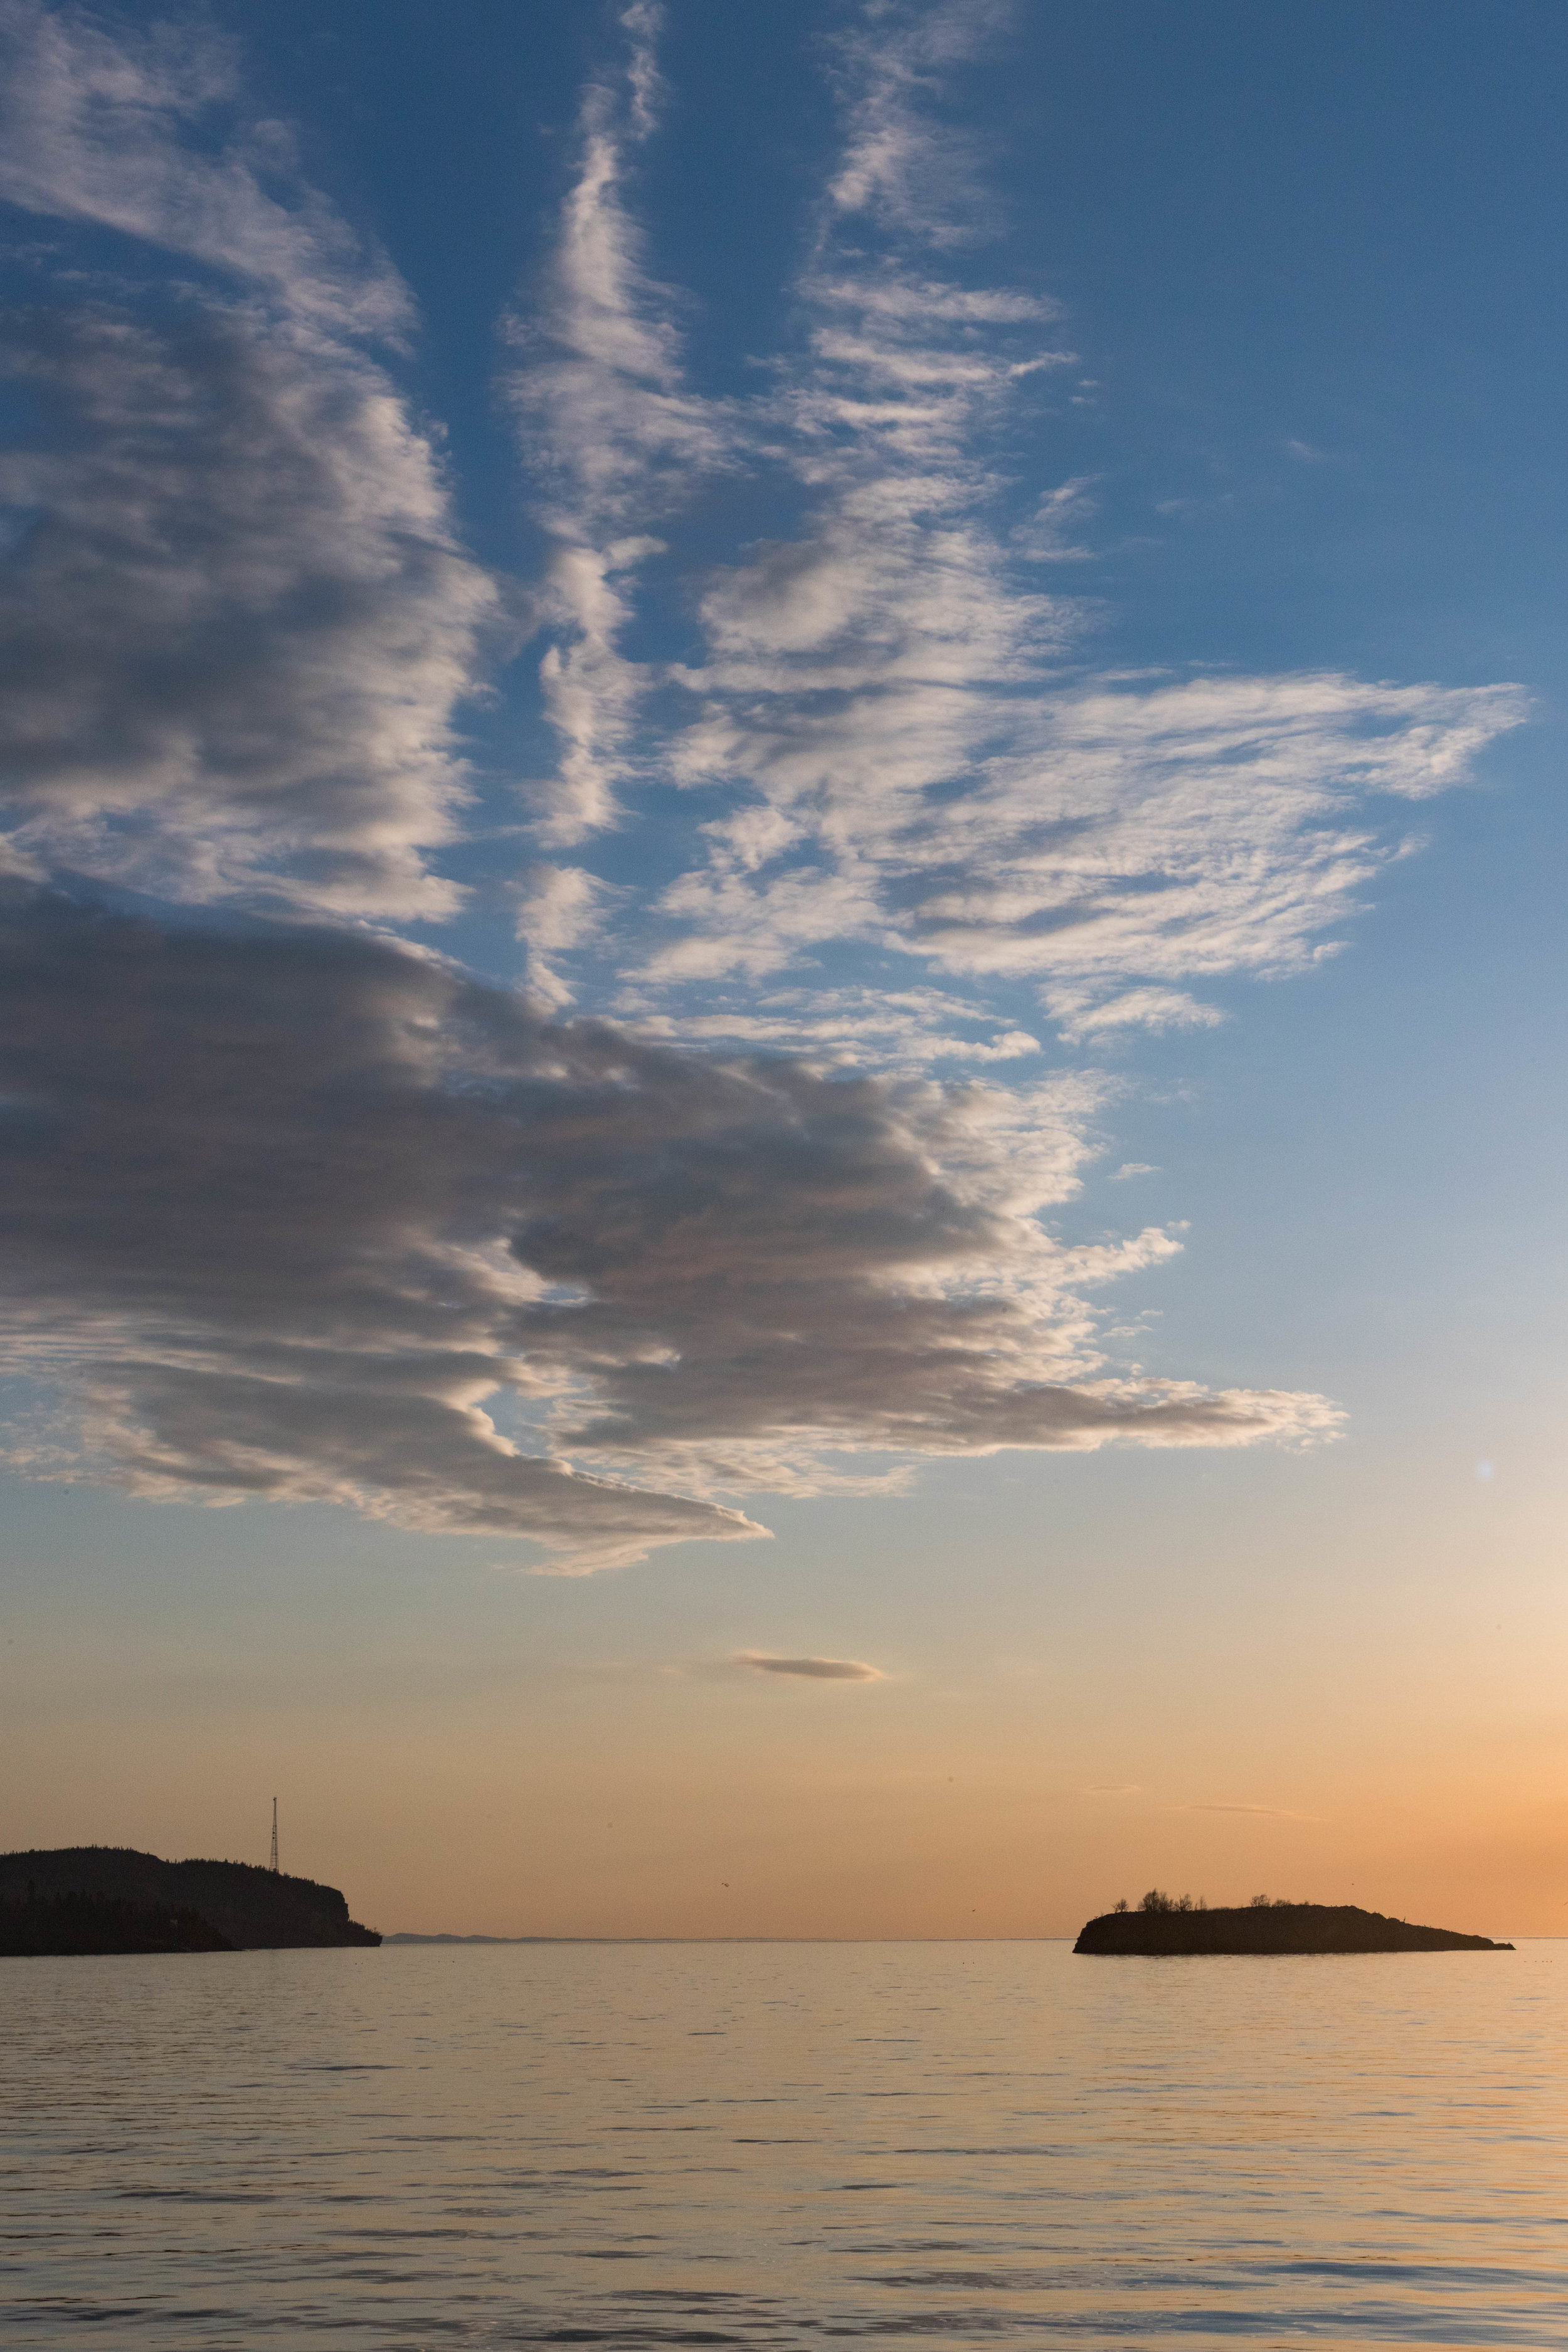 morning clouds over superior - silver bay, minnesota   from US$15